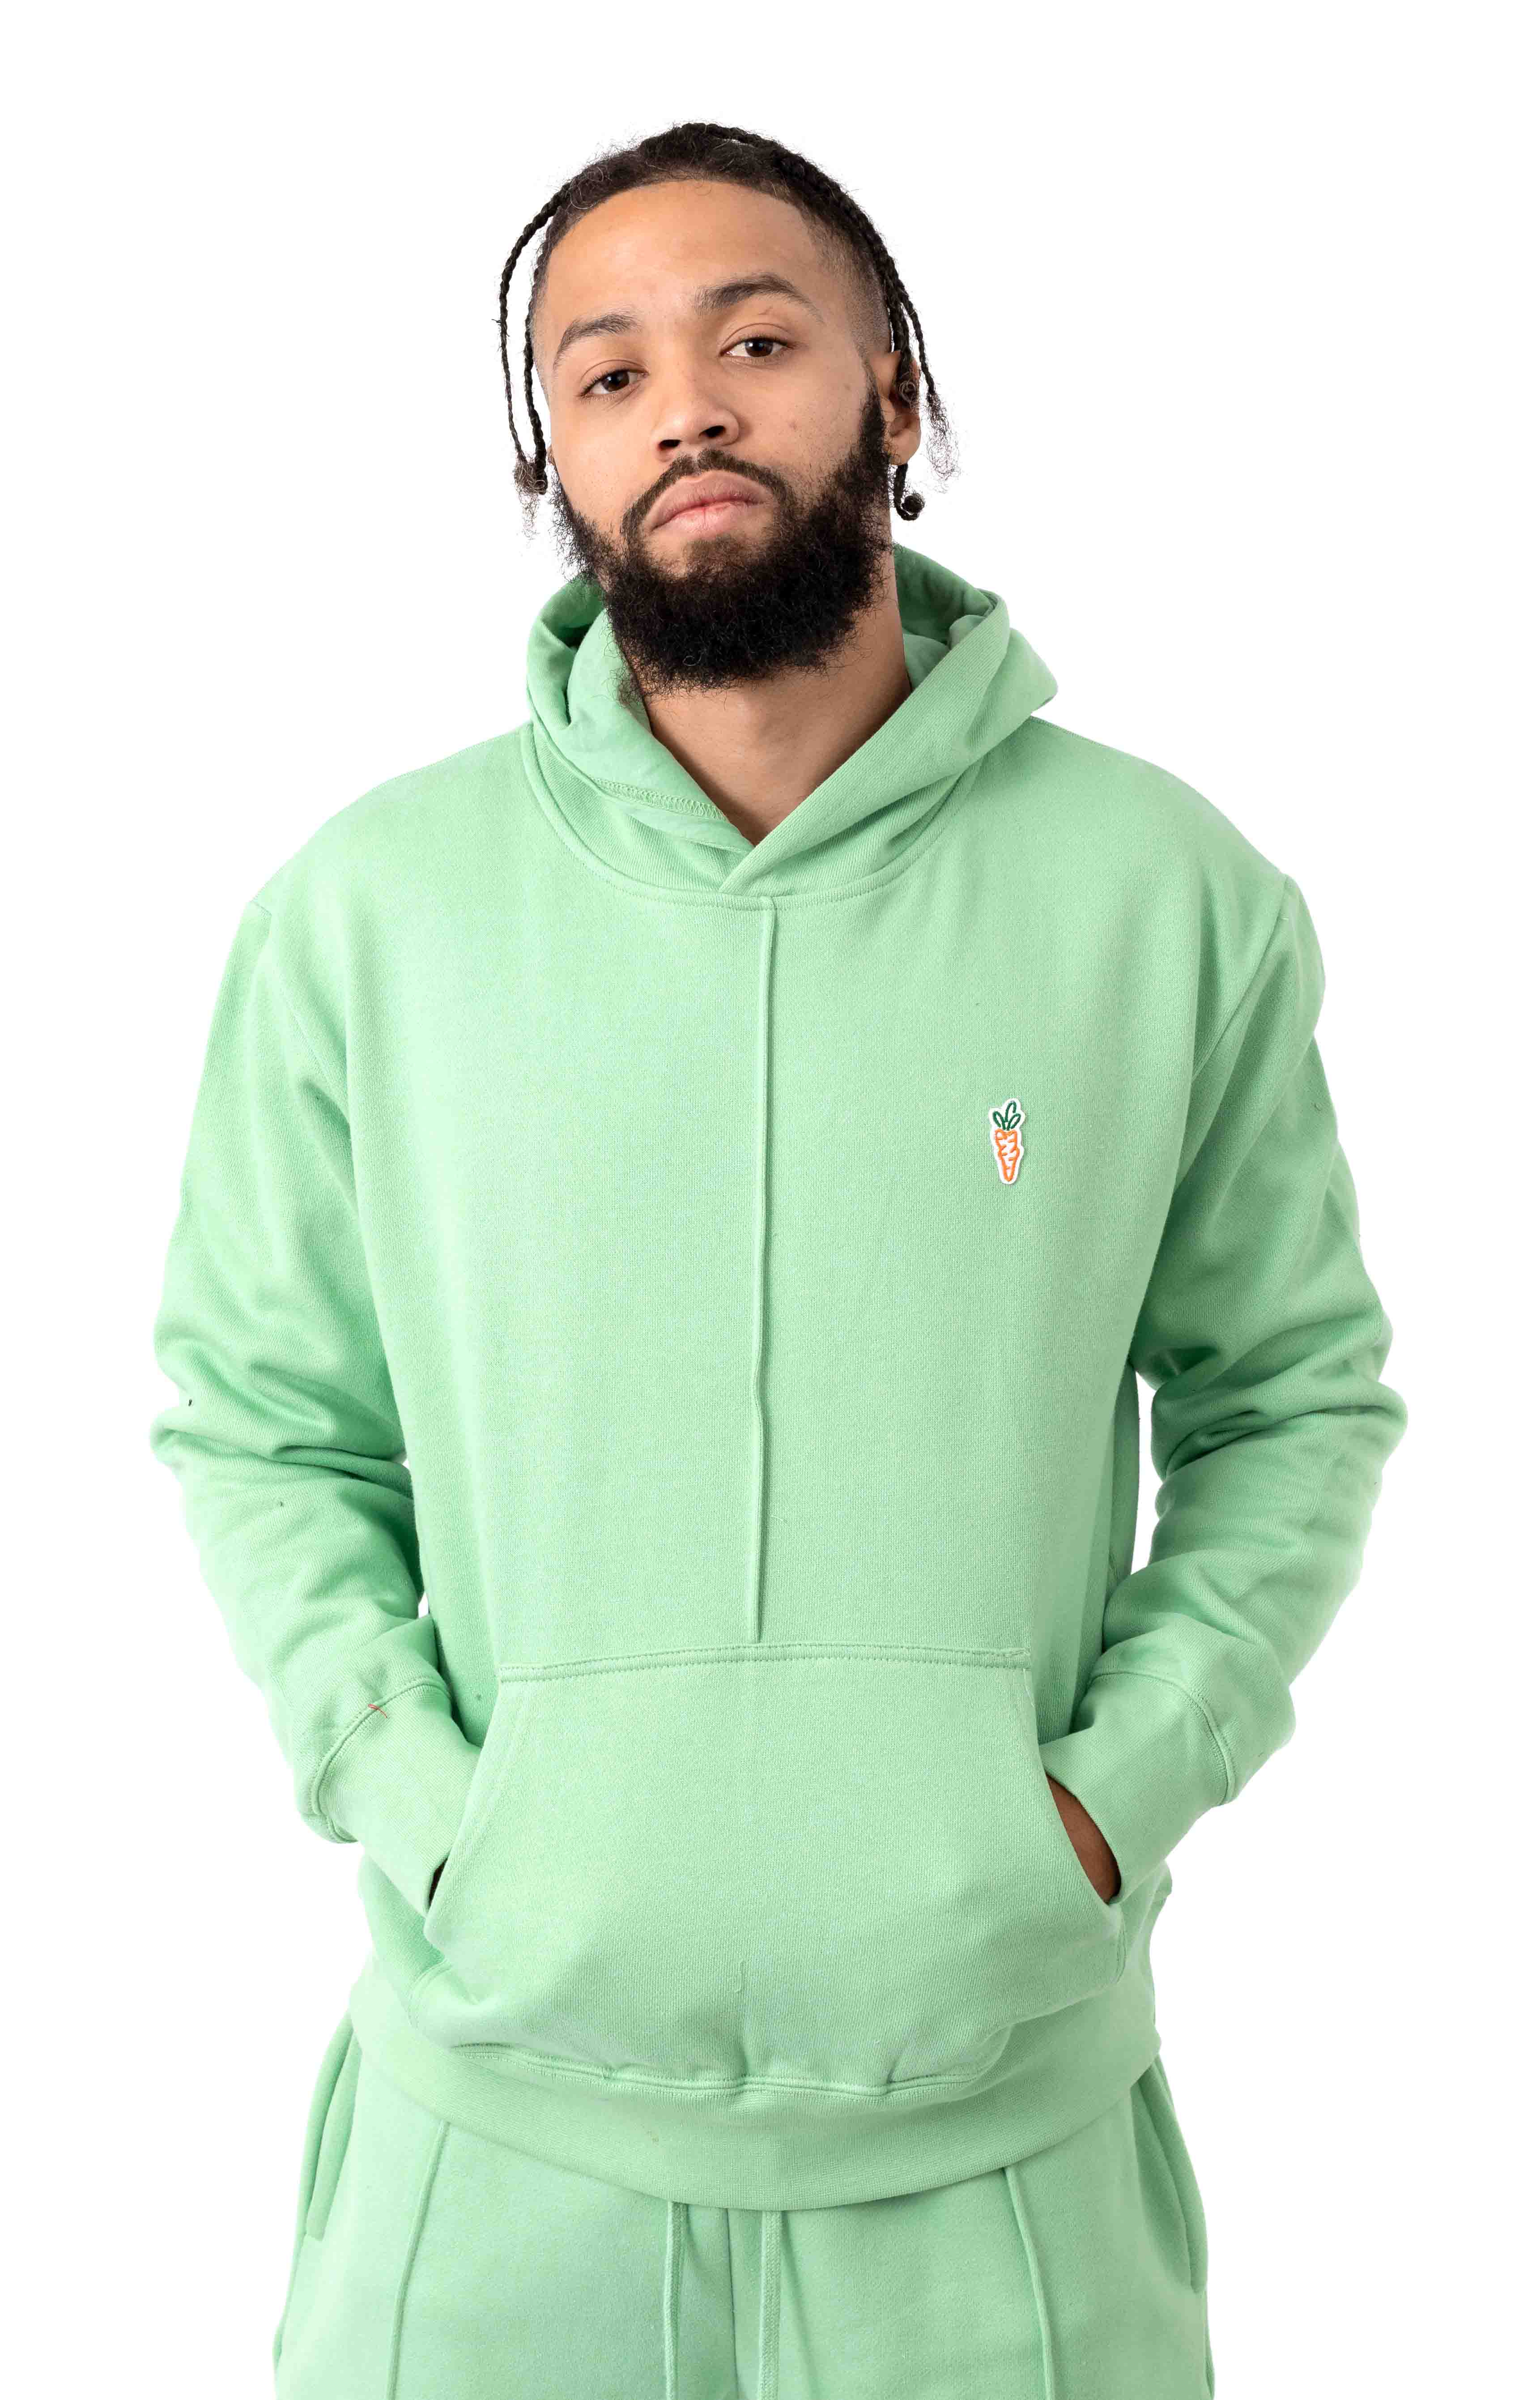 Signature Carrot Patch Pullover Hoodie - Sage Green